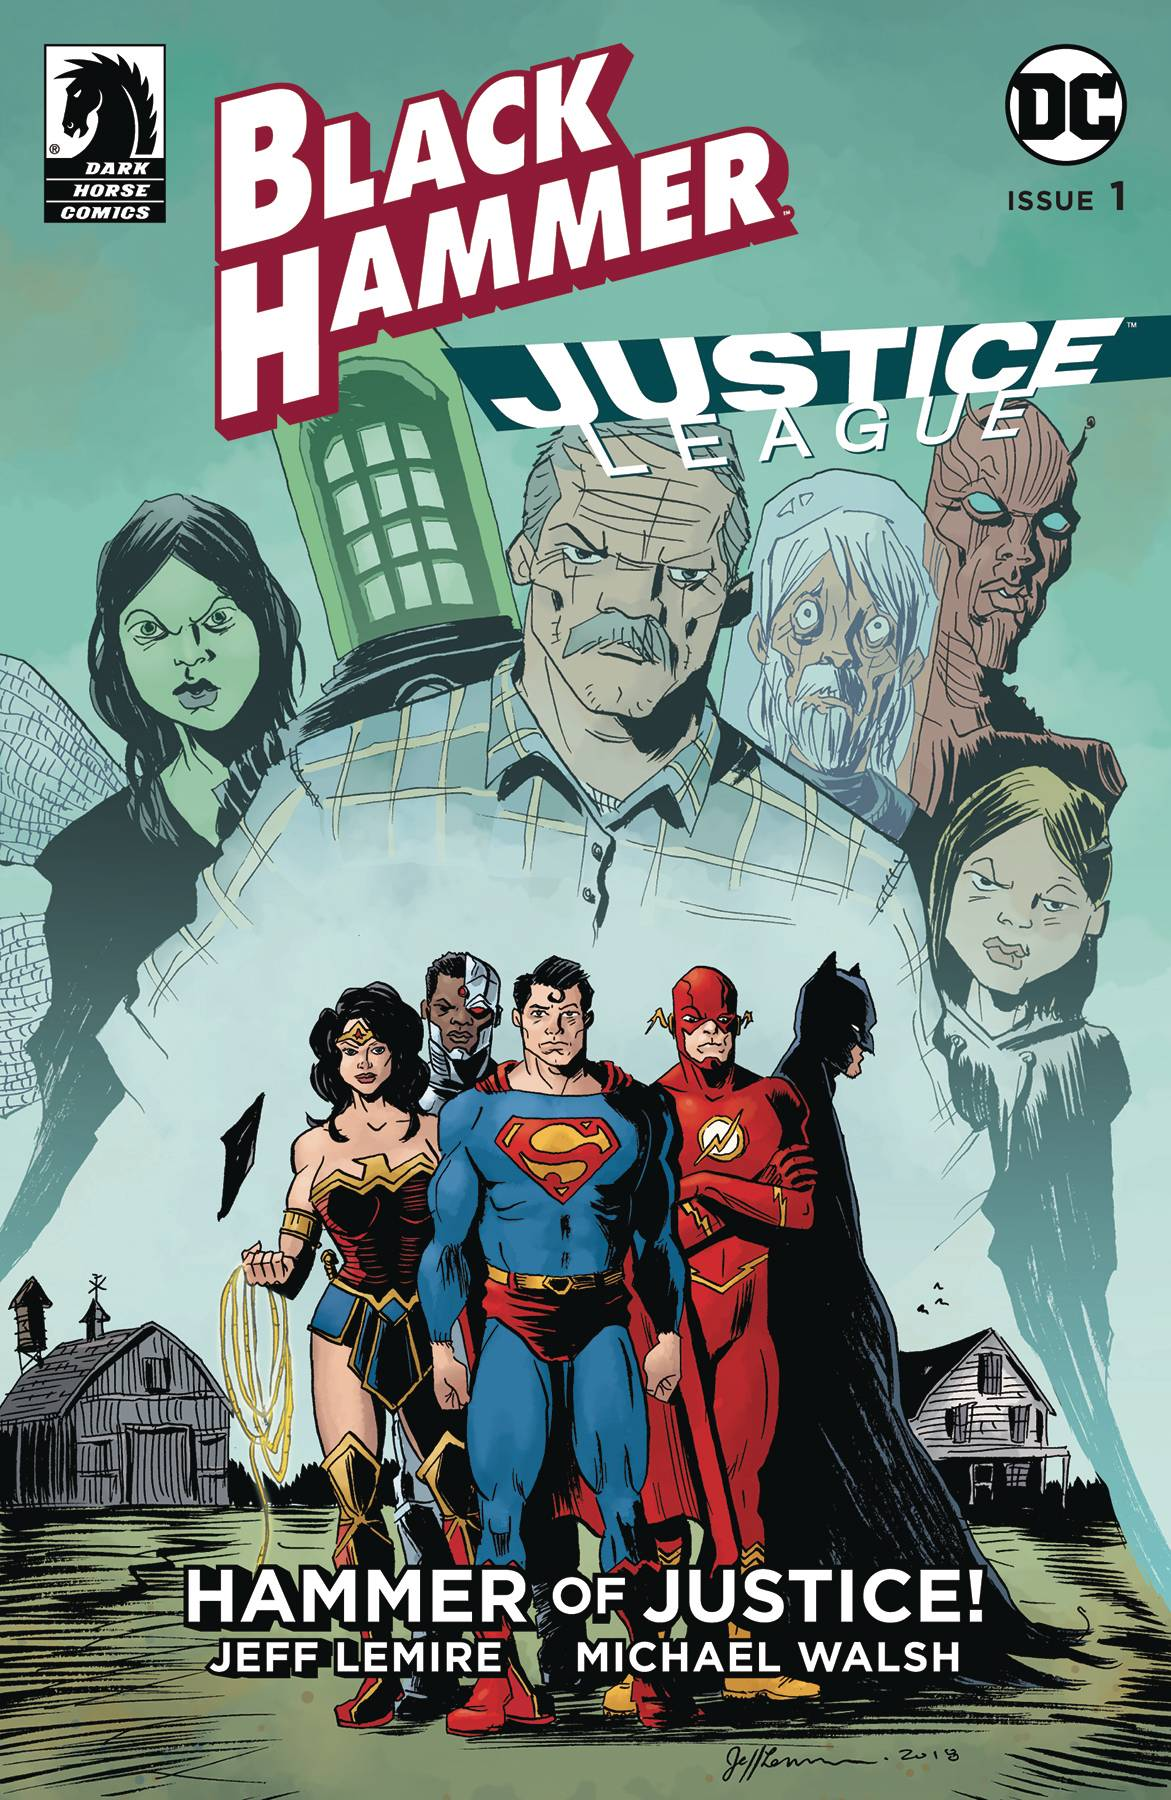 BLACK HAMMER JUSTICE LEAGUE 1 of 5 CVR D LEMIRE.jpg